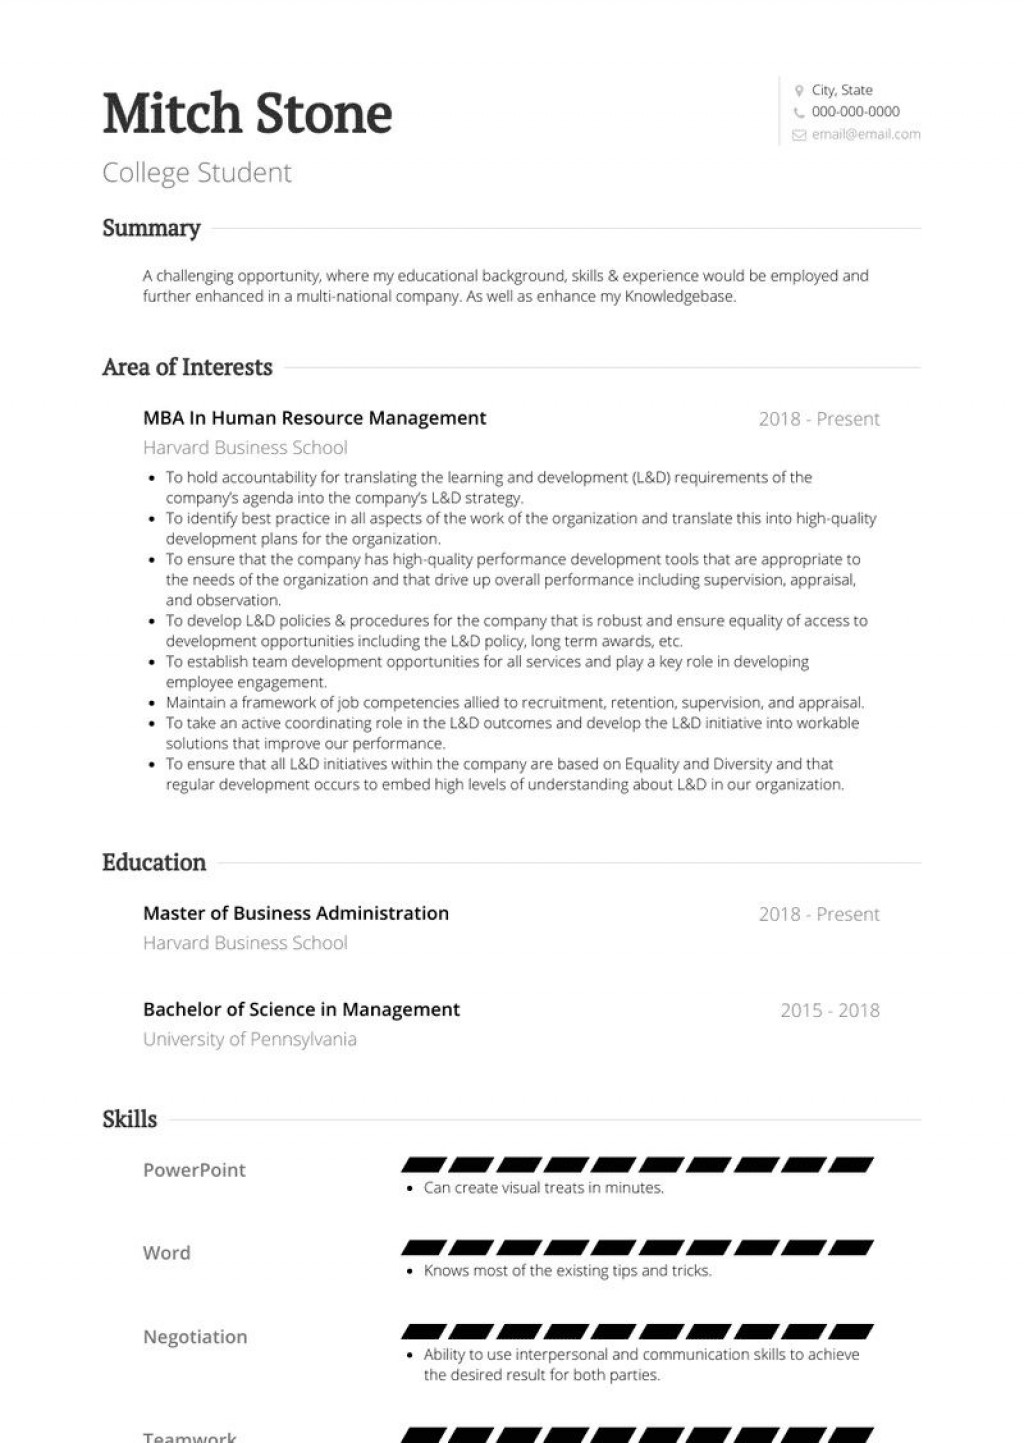 005 Frightening Resume Template For Student Photo  Students High School Internship Google Doc Openoffice Free DownloadLarge